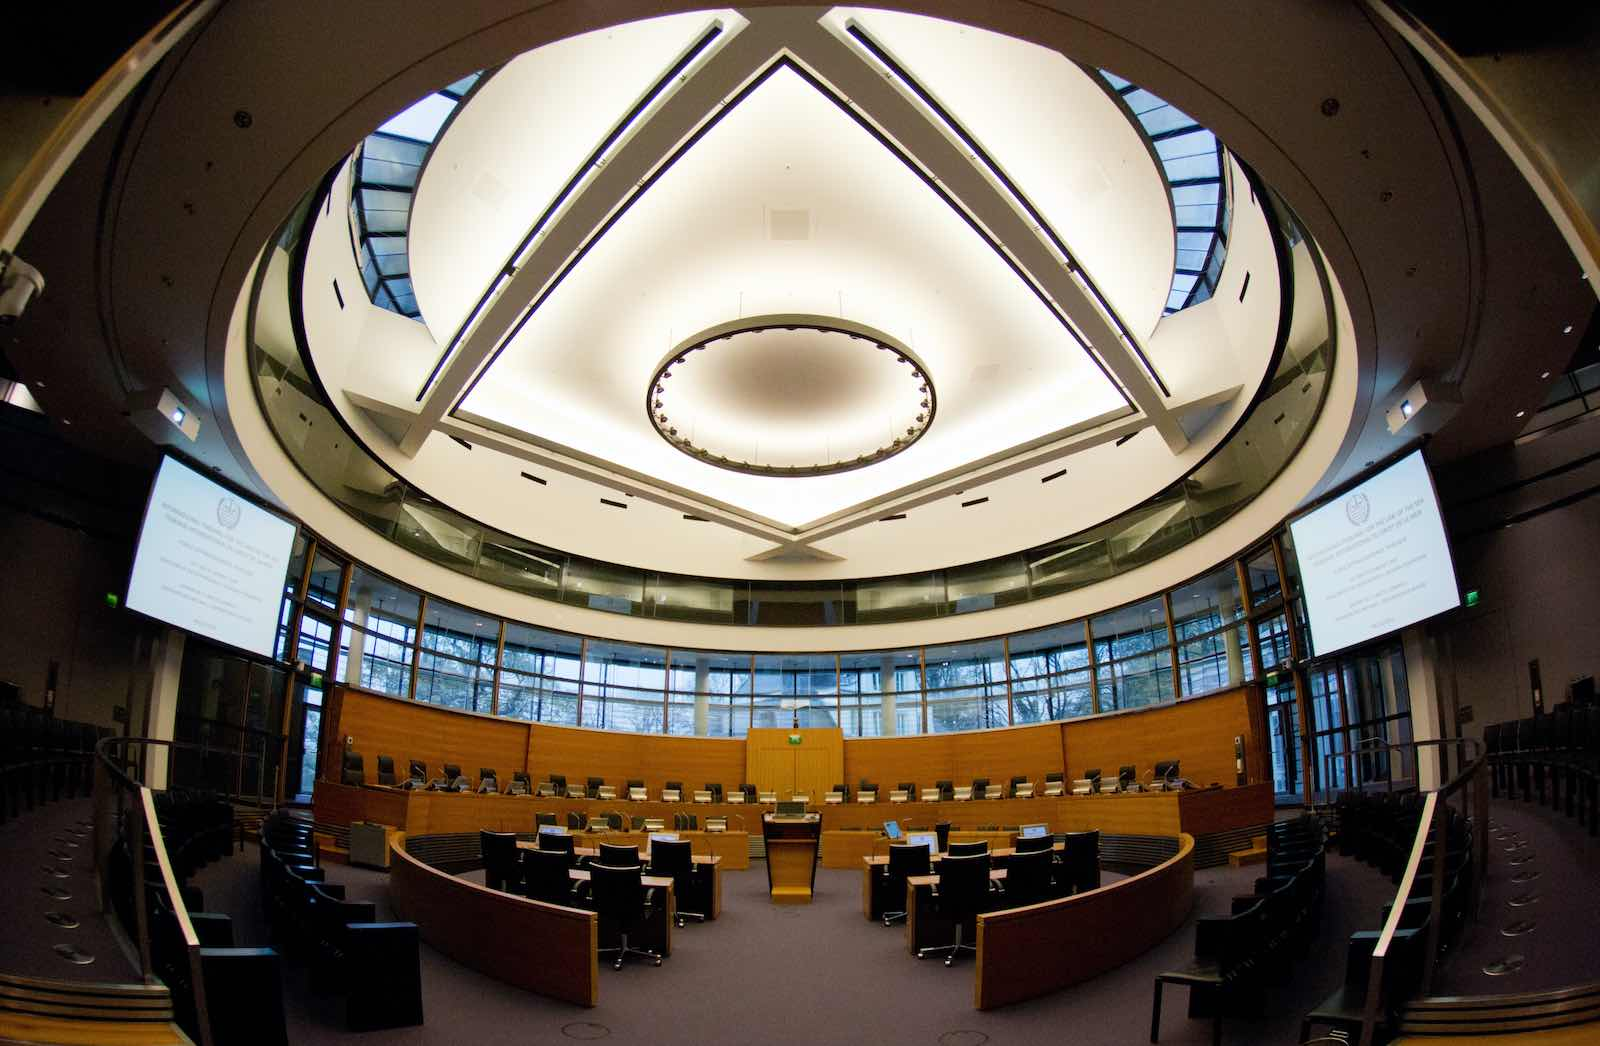 The courtroom of the International Tribunal for the Law of the Sea, in Hamburg, Germany (Christian Charisius/DPA/AFP via Getty Images)